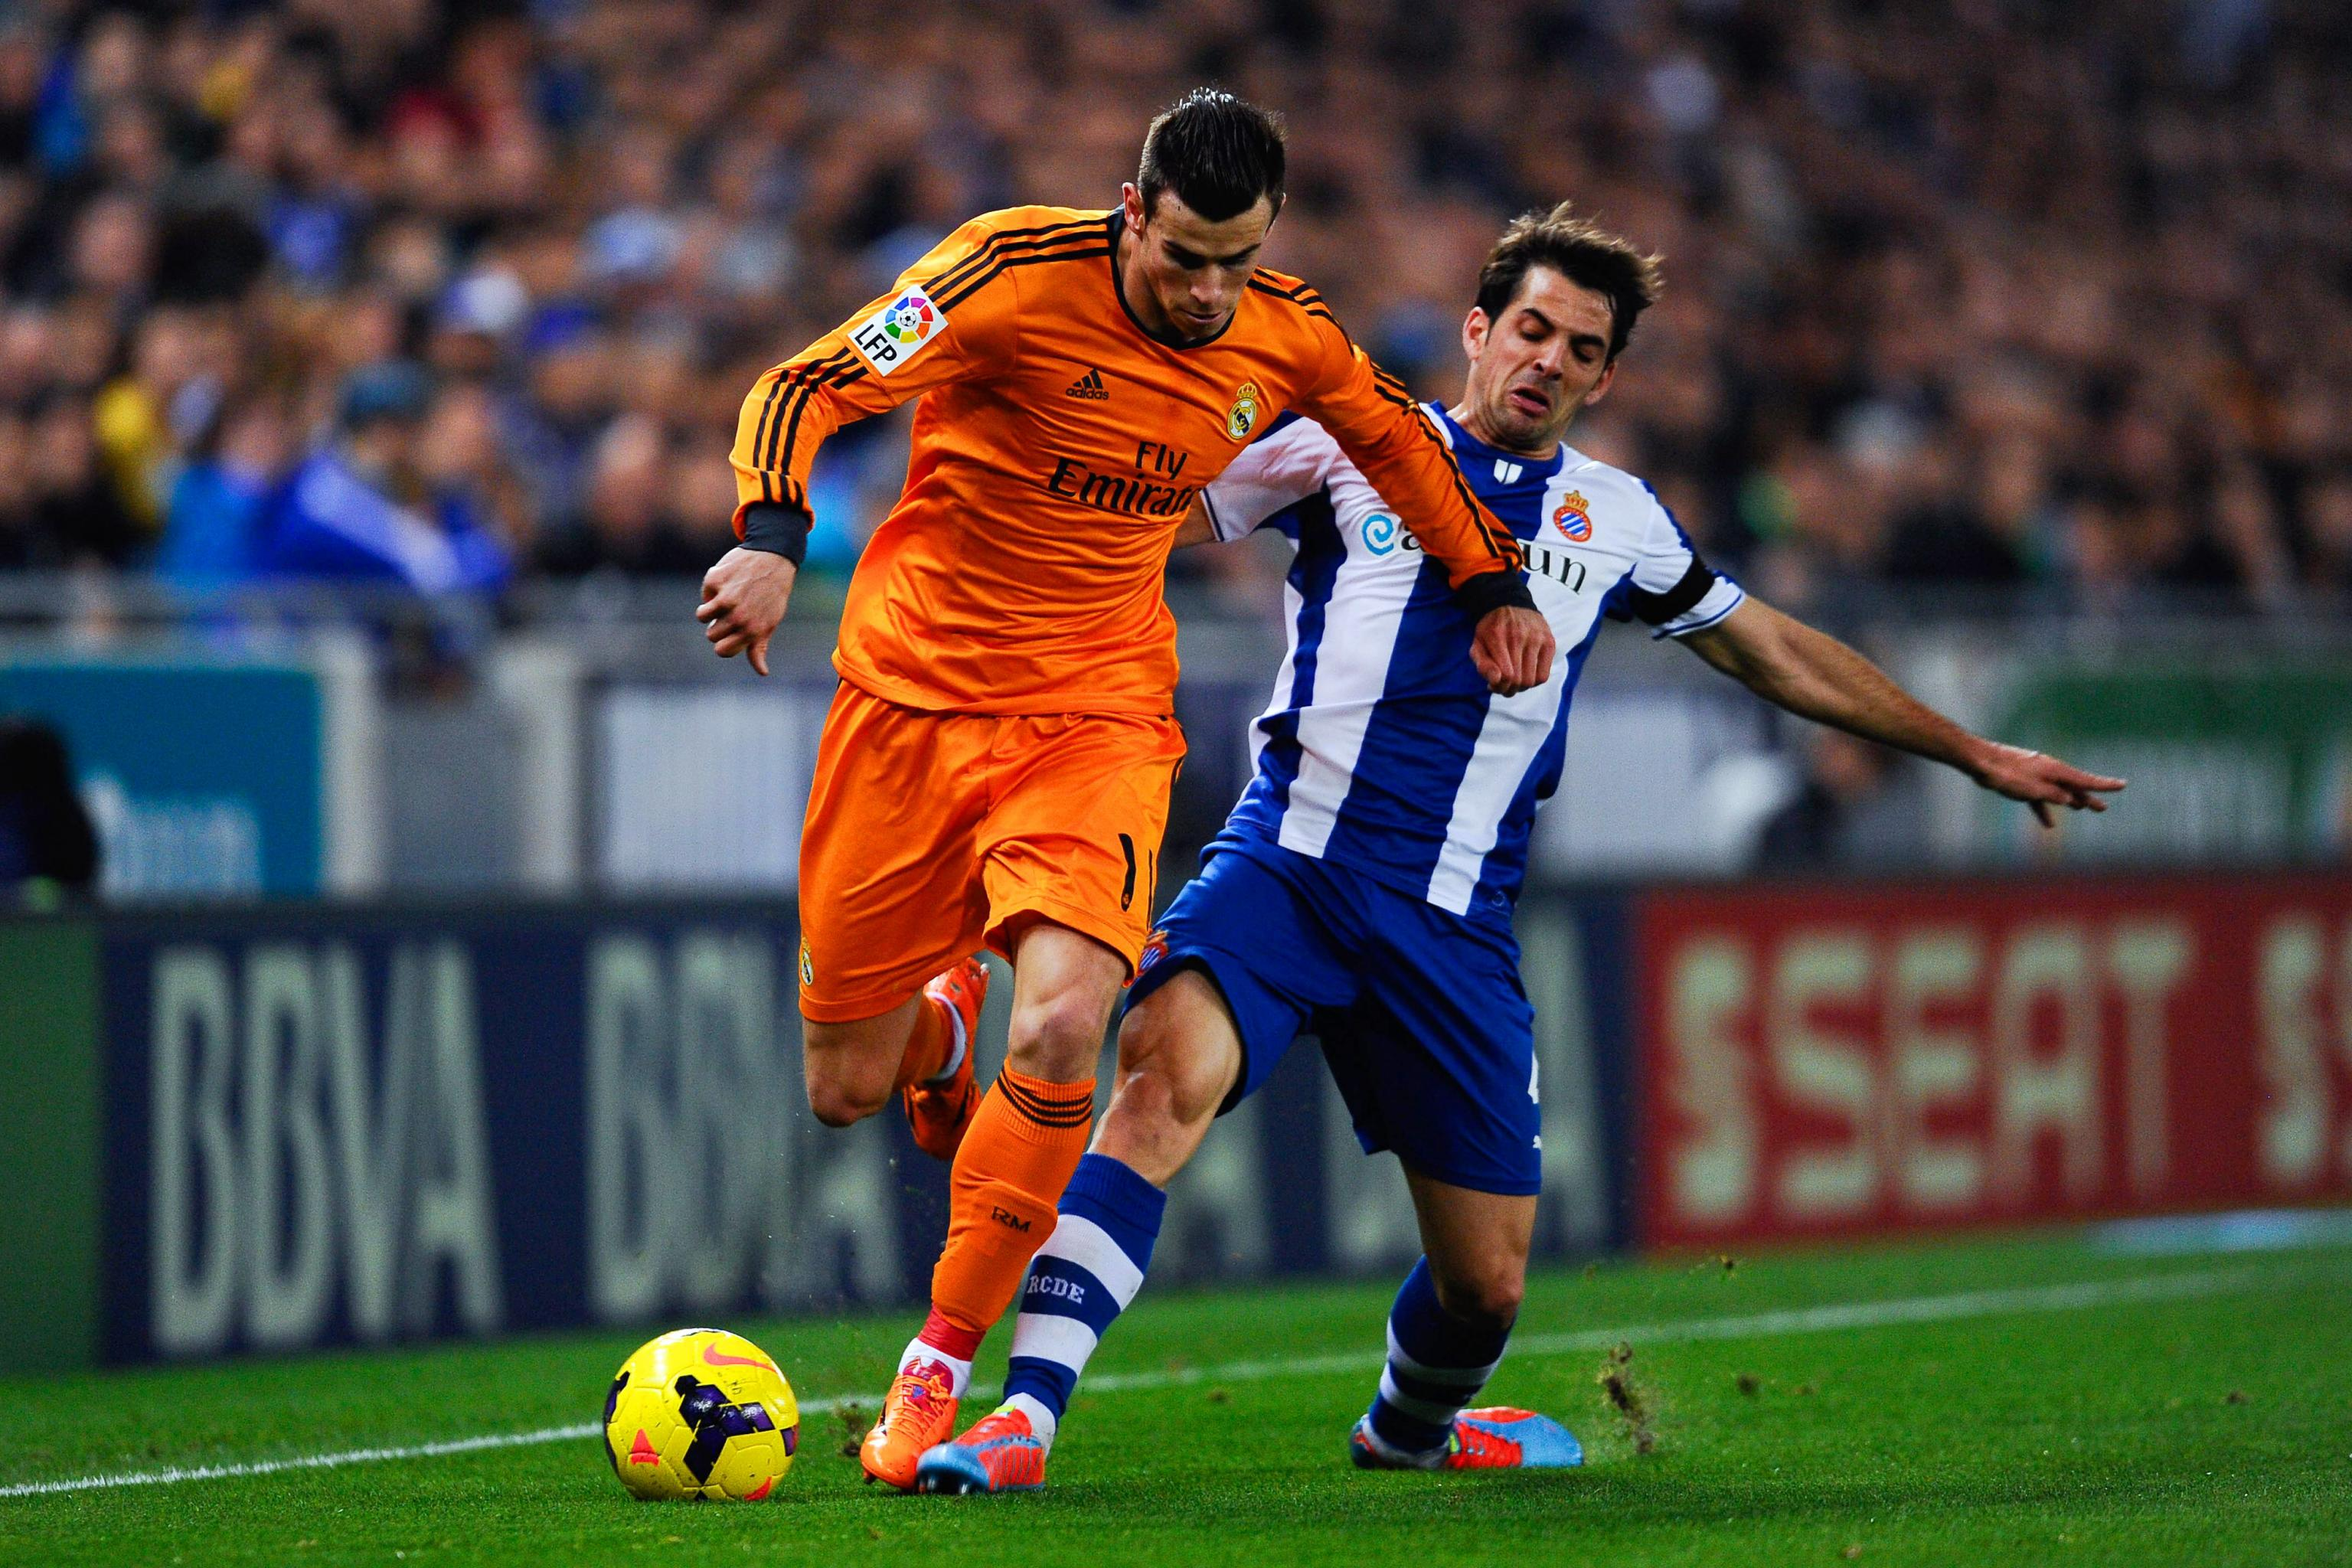 Espanyol Vs Real Madrid Date Time Live Stream Tv Info And Preview Bleacher Report Latest News Videos And Highlights